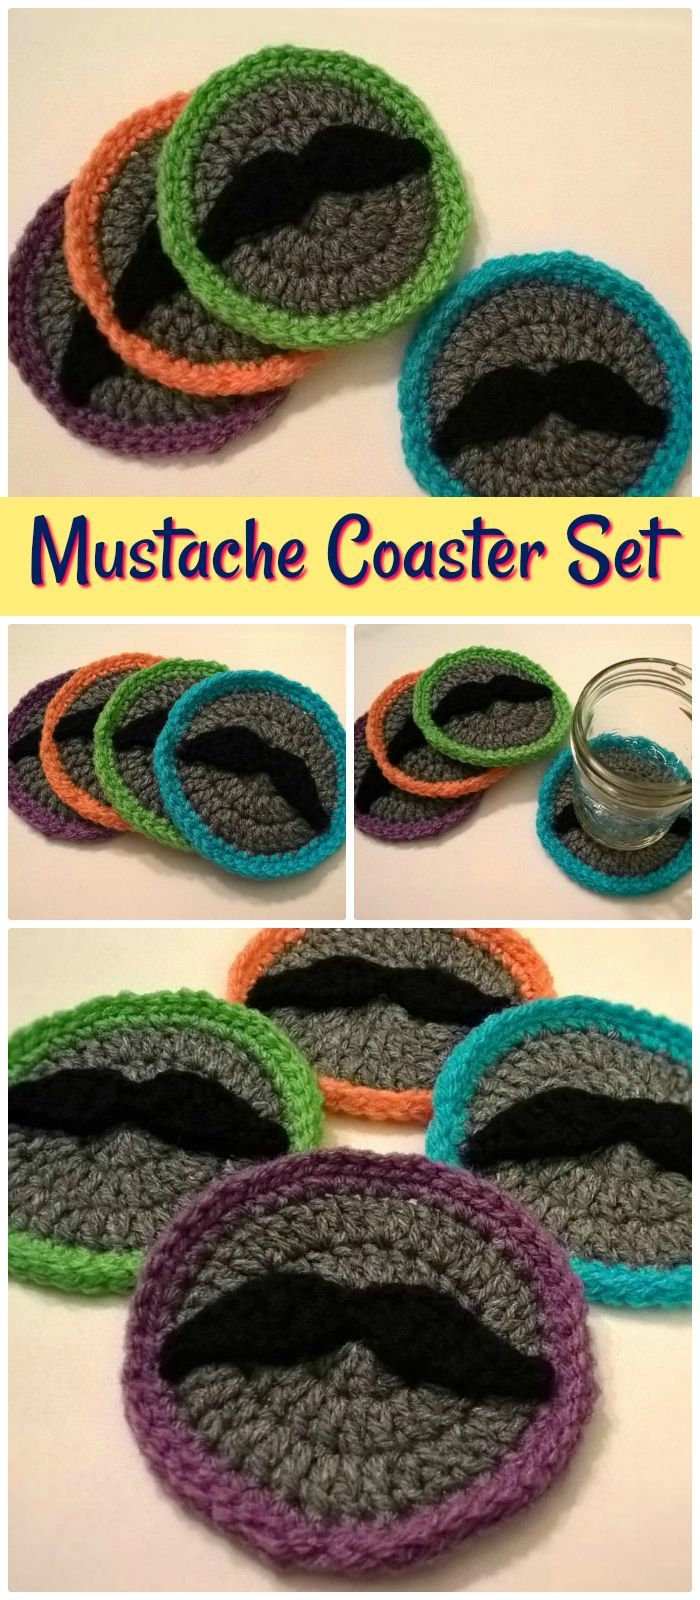 Free Crochet Coaster Patterns Look Very Beautiful And Cute With The